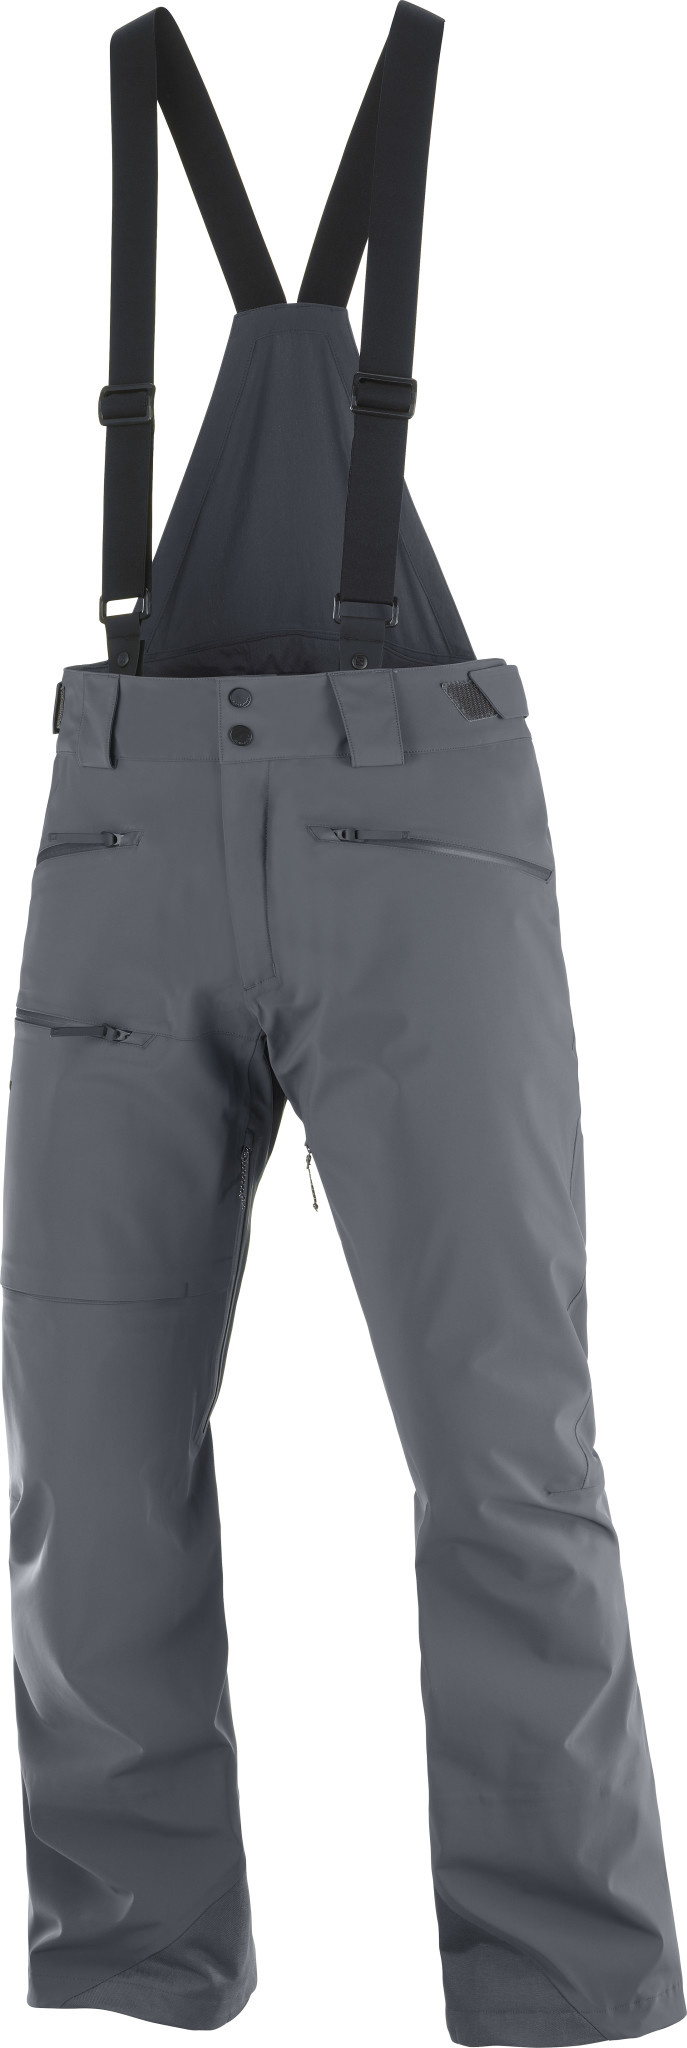 OUTLAW 3L SHELL PANT M-4